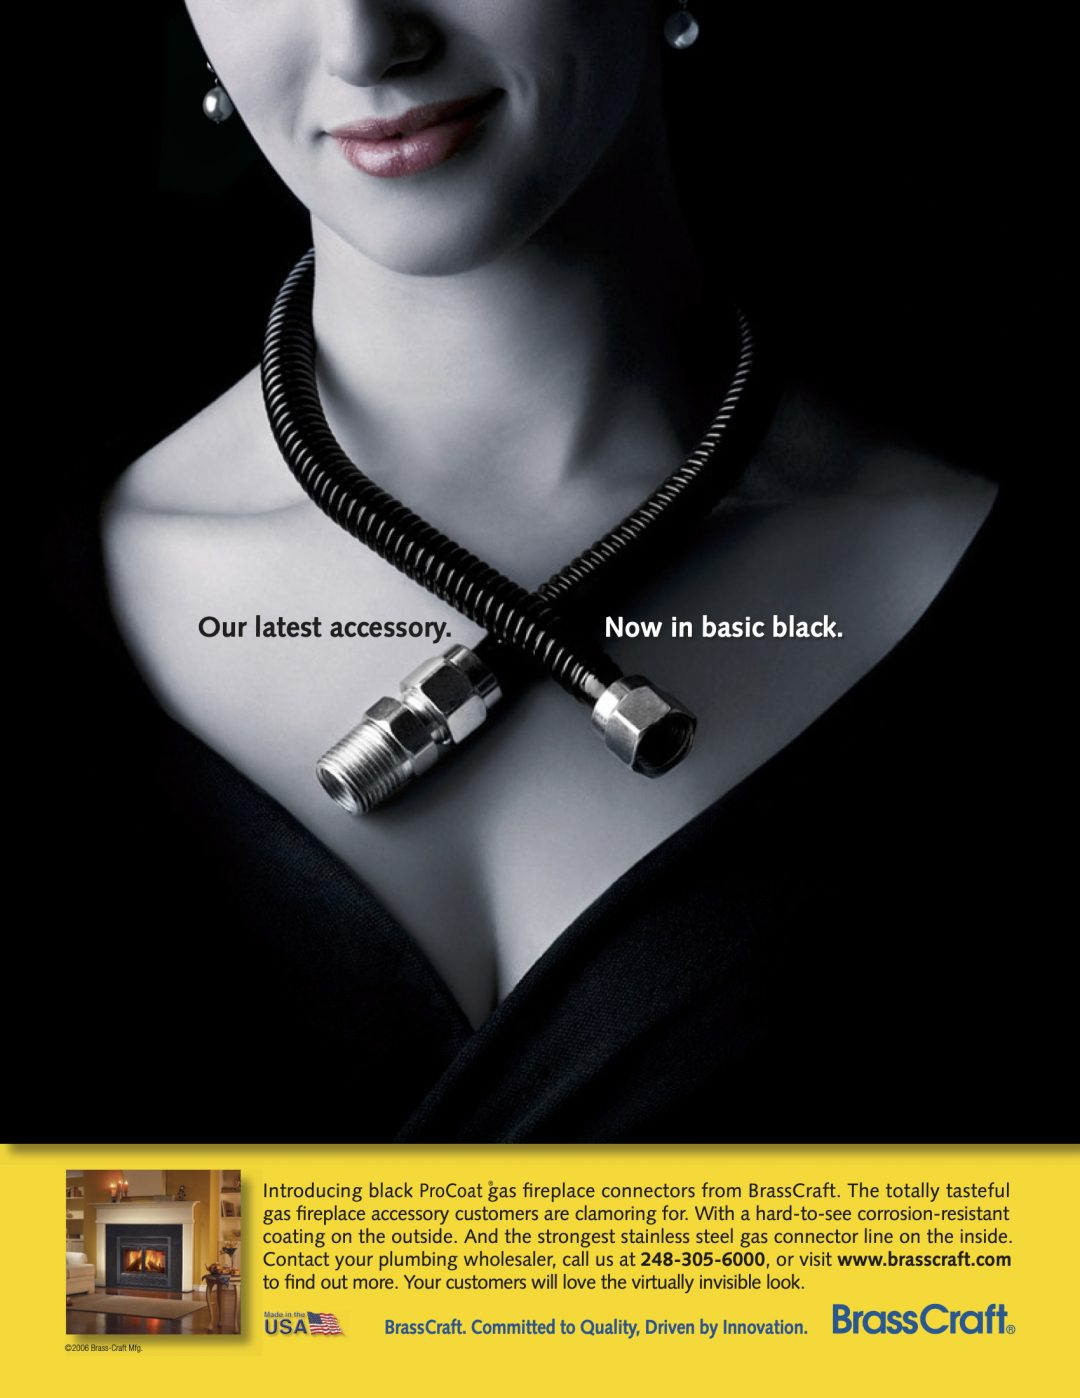 BrassCraft Ad - Fireplace connector shown as necklace around lady's neck